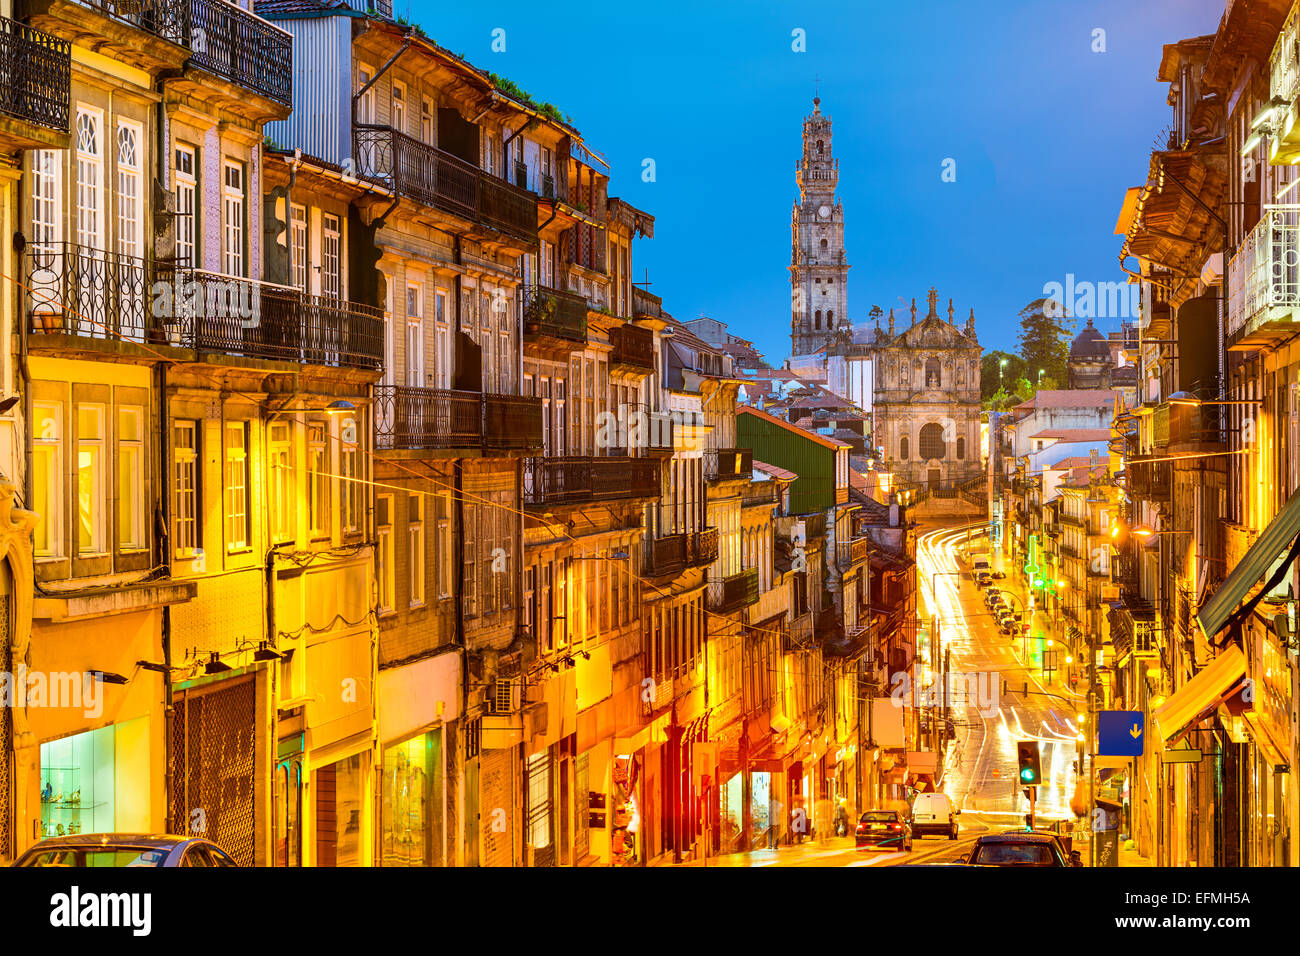 Porto, Portugal cityscape towards Clerigos Church. - Stock Image